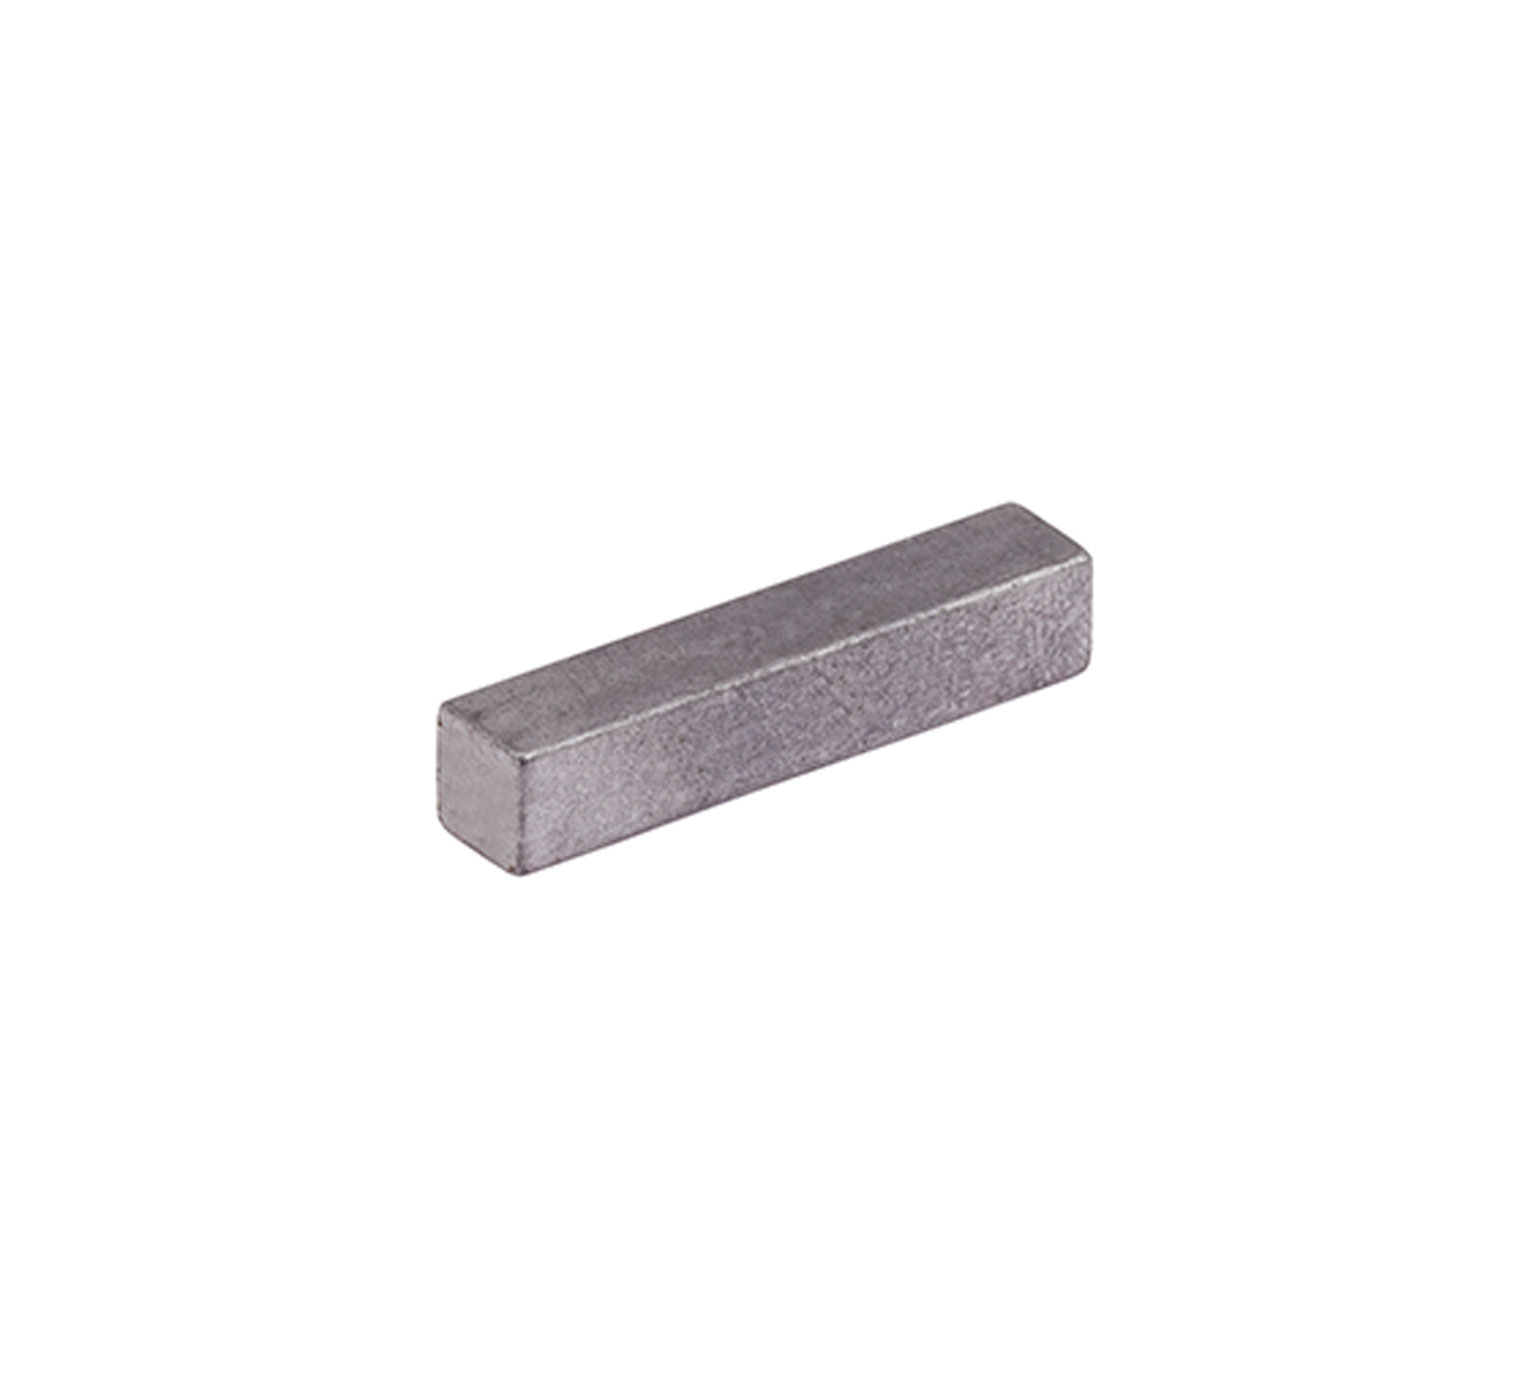 00927 Cold Rolled Steel Key - 2.5 x 2.5 x 1.25 in alt 1